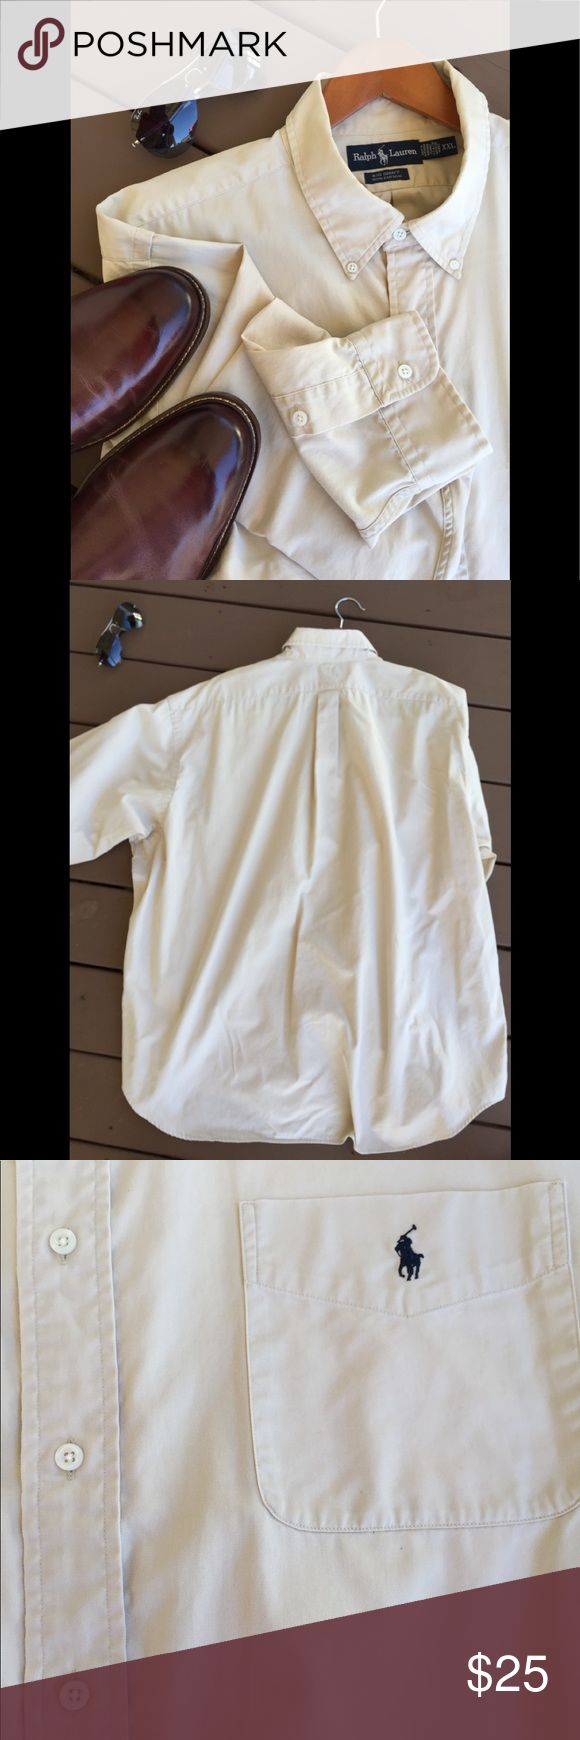 Men's Ralph Lauren Cream Color Big Shirt Men's Ralph Lauren Cream Color Big Shirt Size XXL 100% Cotton  Comes from a pet free and smoking free home Ralph Lauren Shirts Casual Button Down Shirts